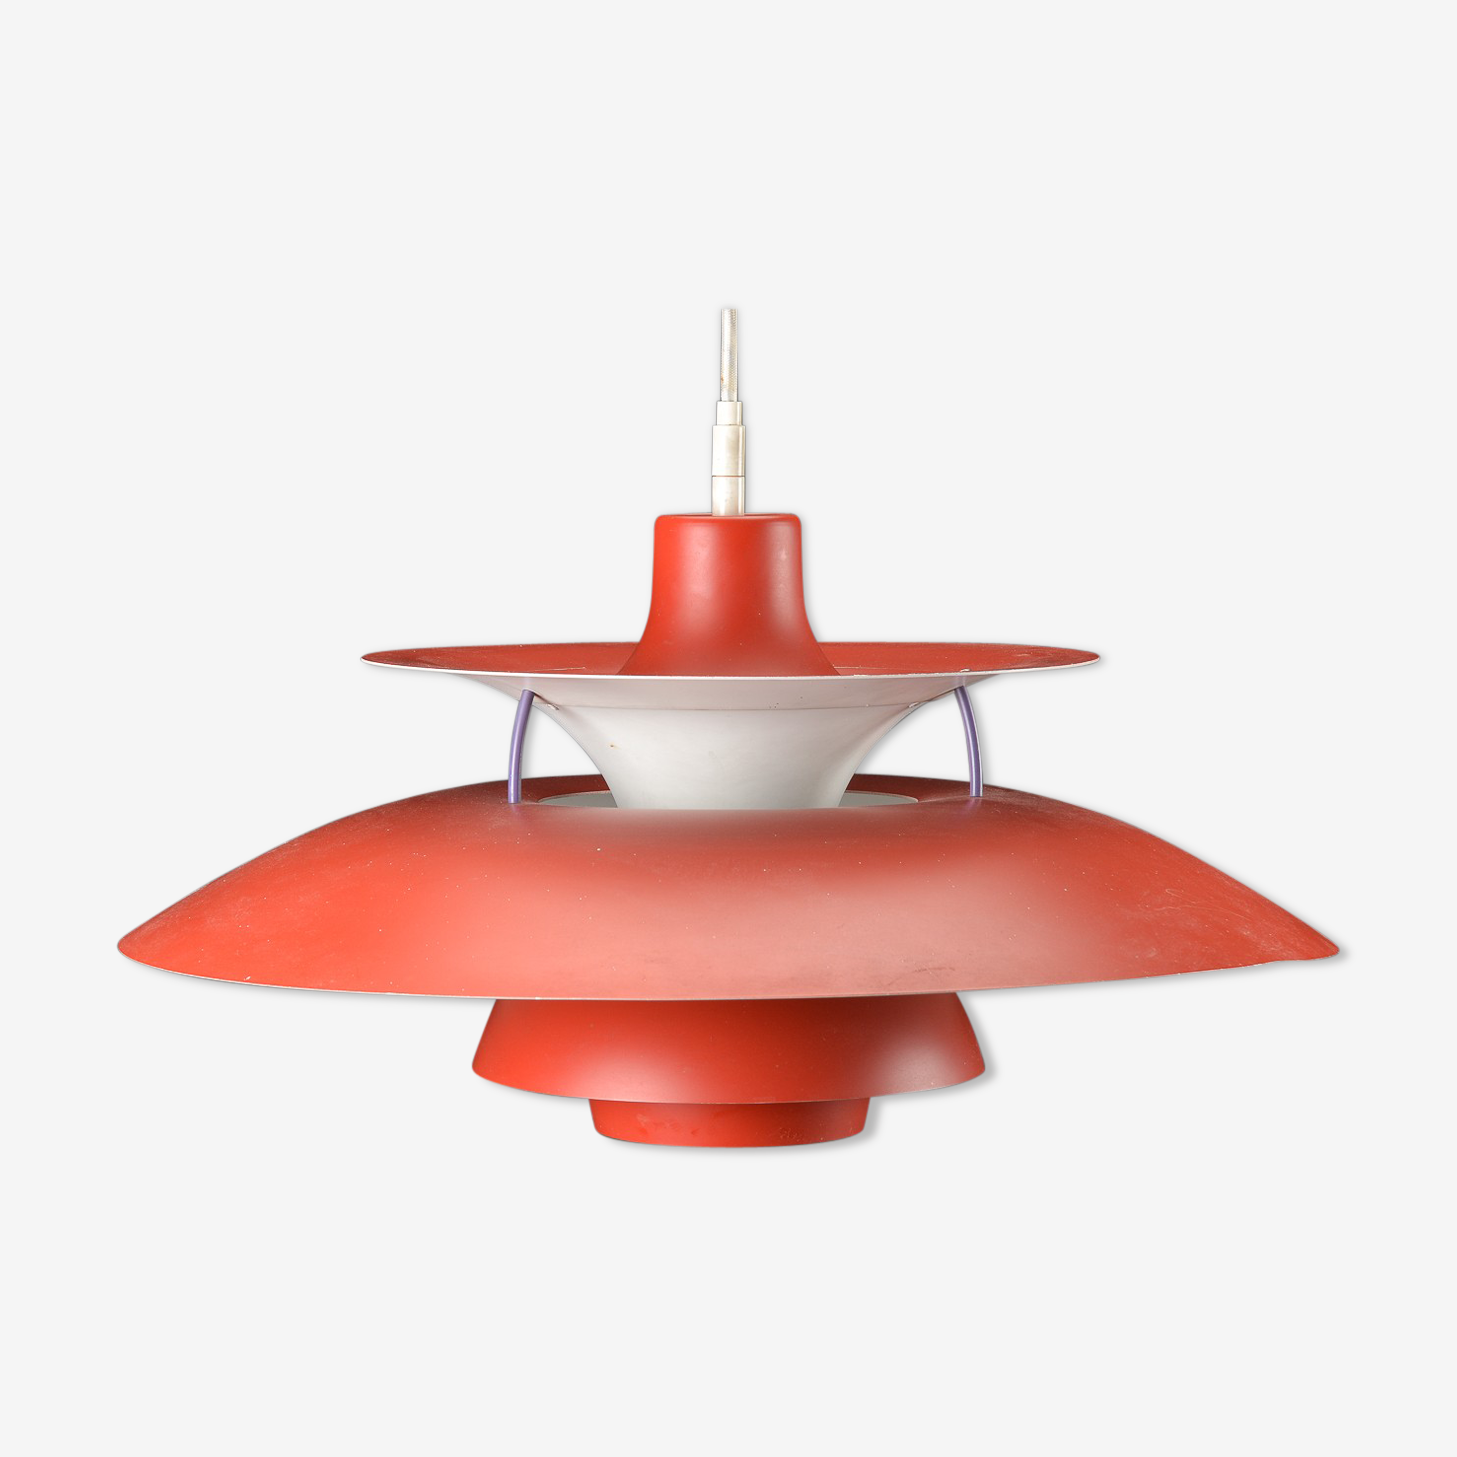 Suspension pH 5 by Poul Henningsen